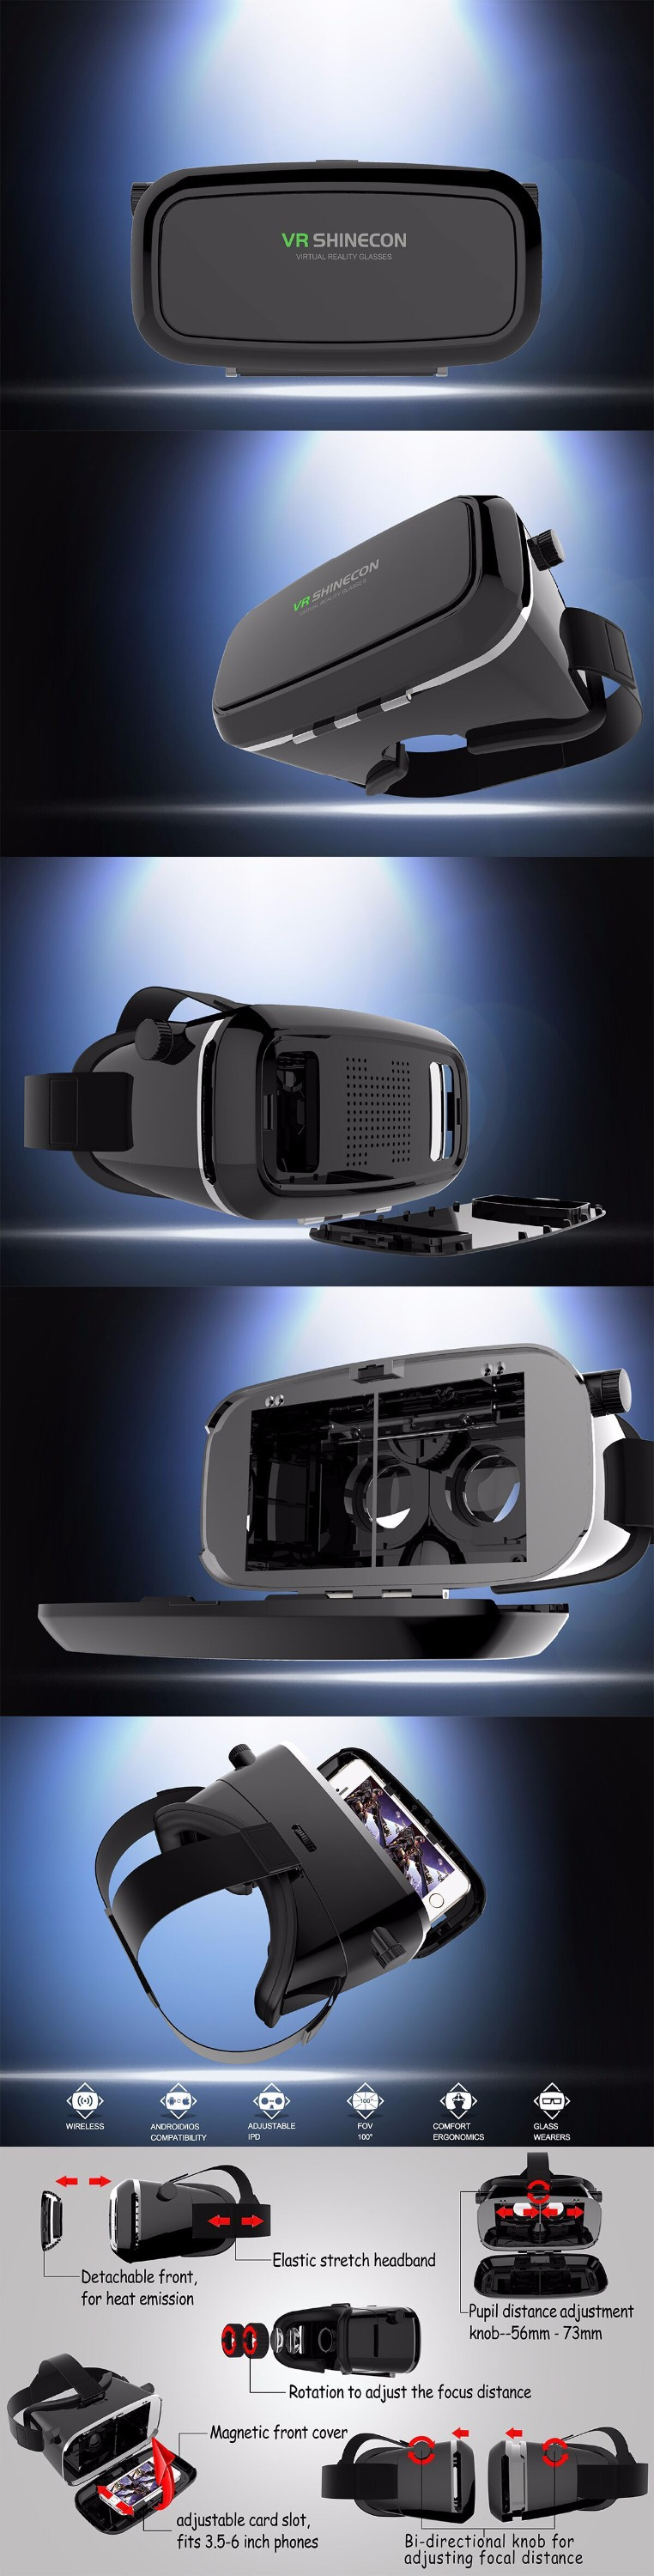 2015 vr shinecon low price plastic 3d glasses virtual reality high quality vr 3d glasses box for meizu/xiaomi